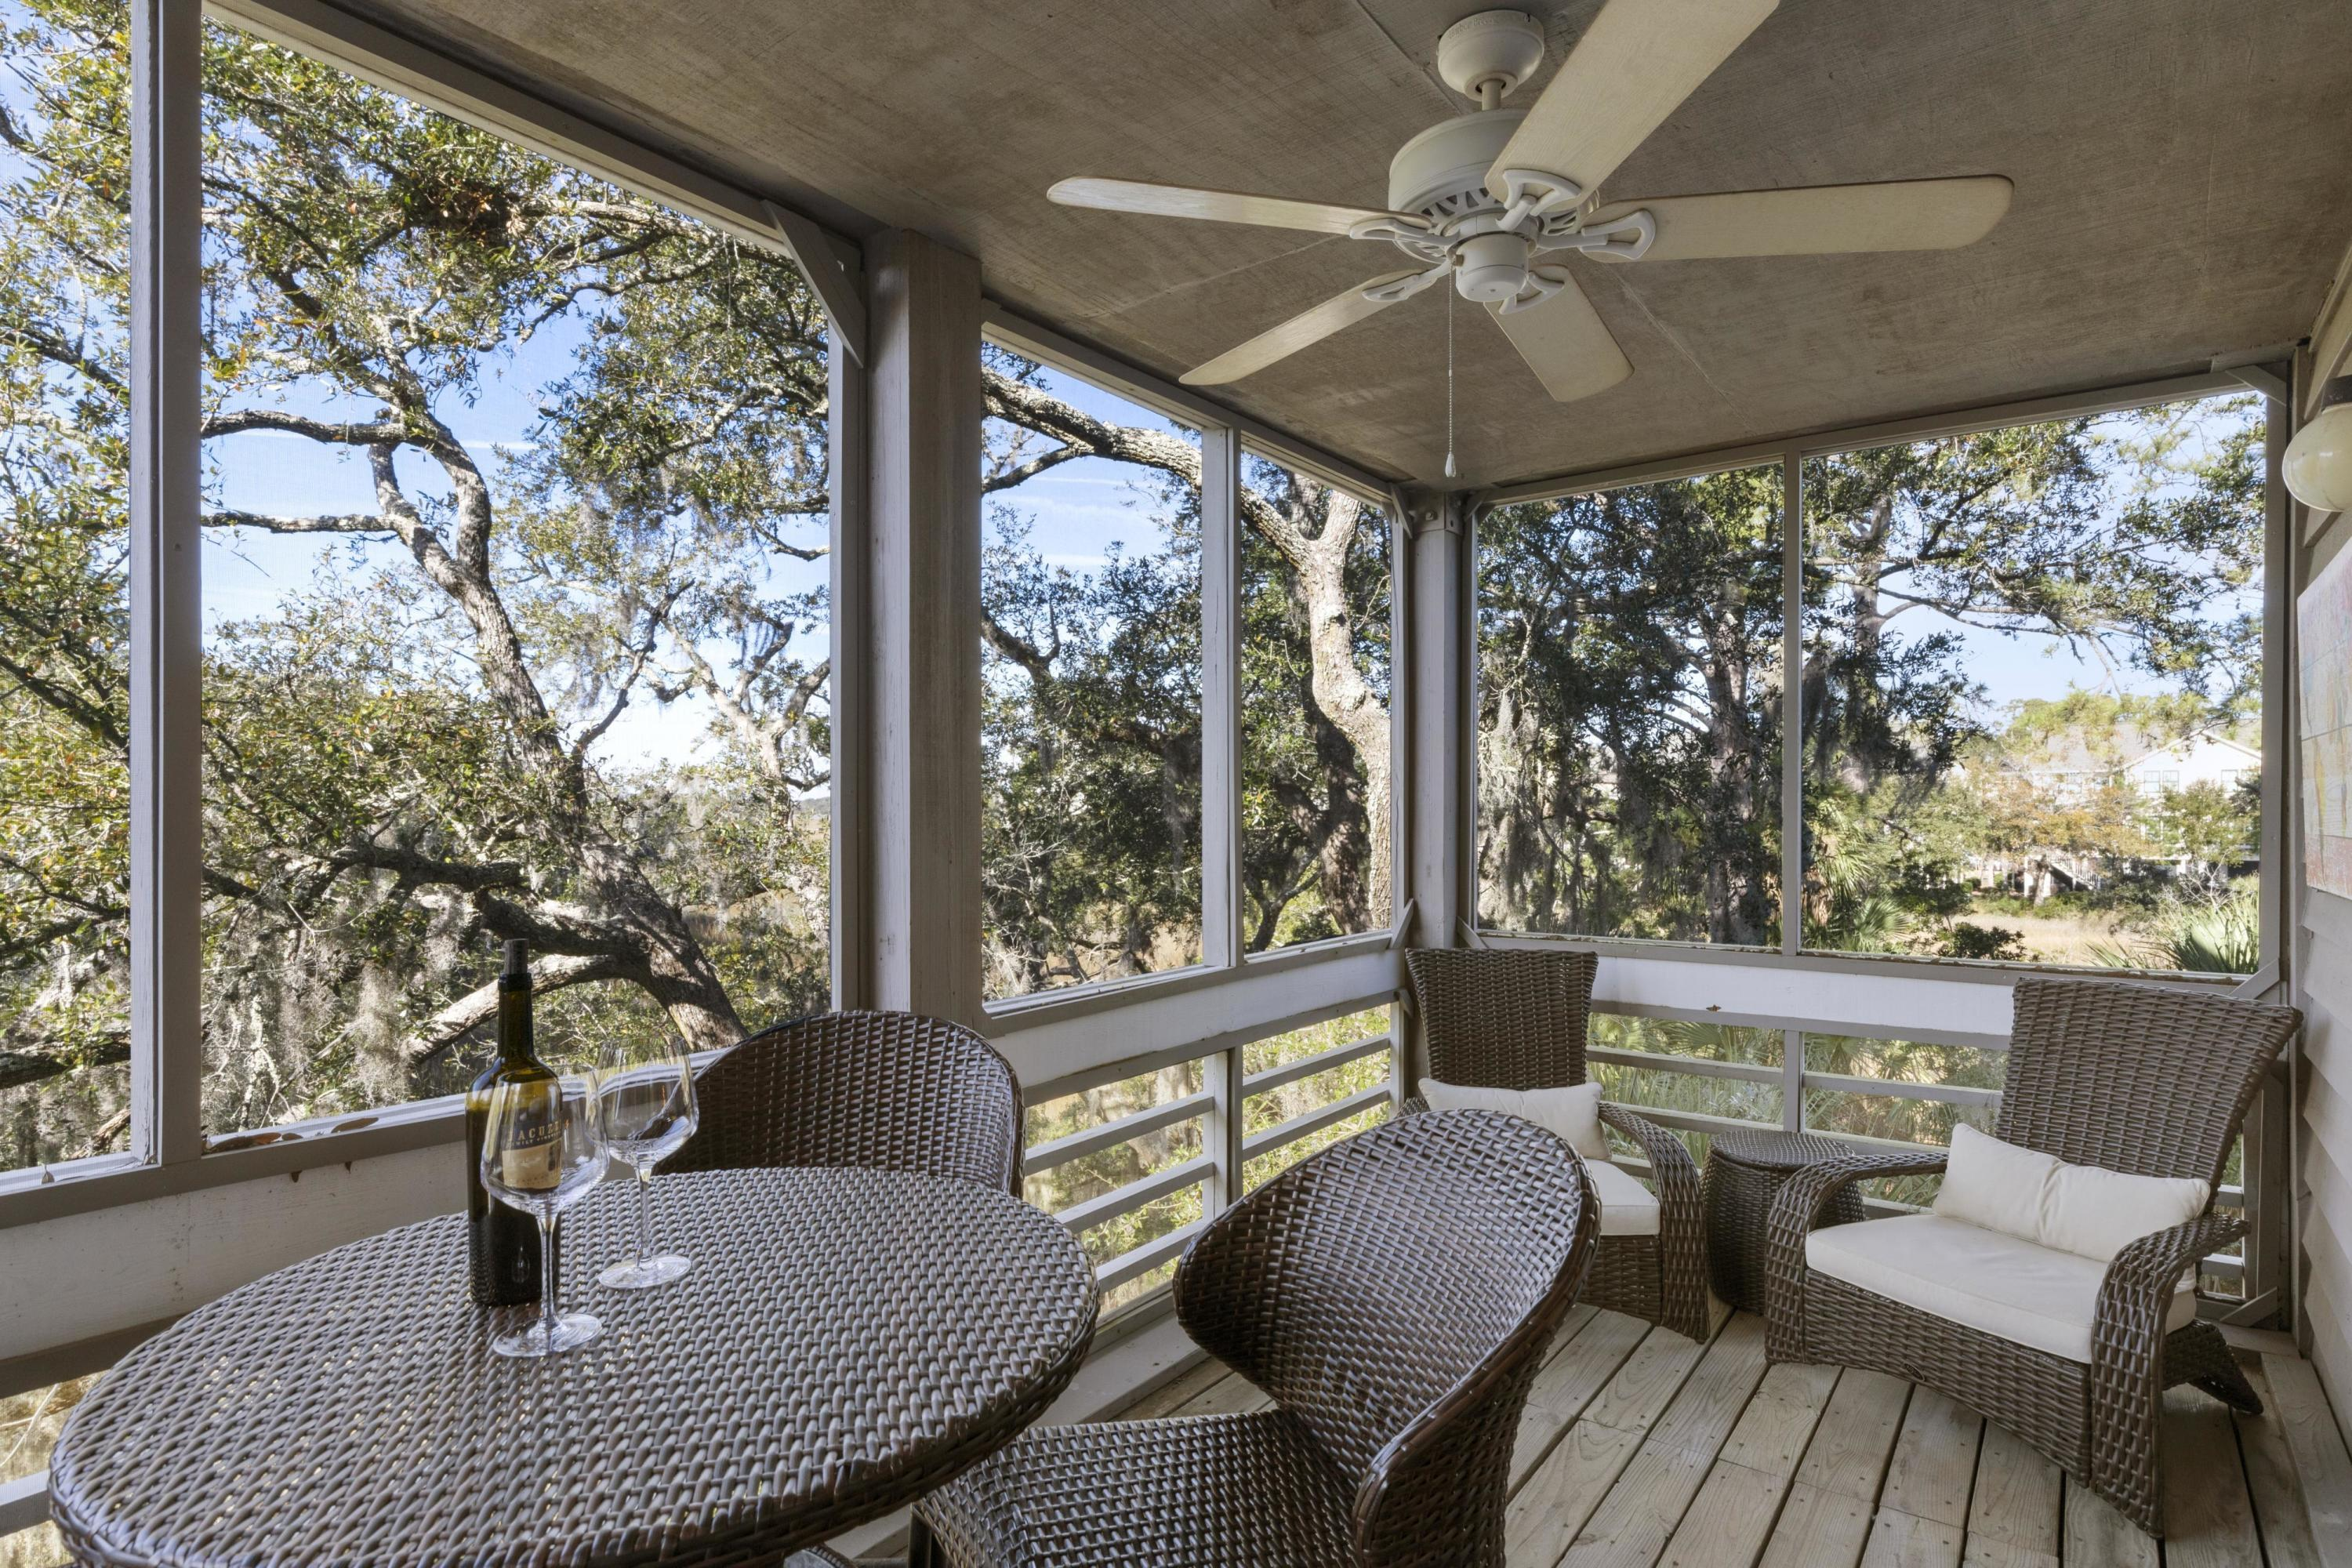 Seabrook Island Condos For Sale - 2416 Racquet Club, Seabrook Island, SC - 2